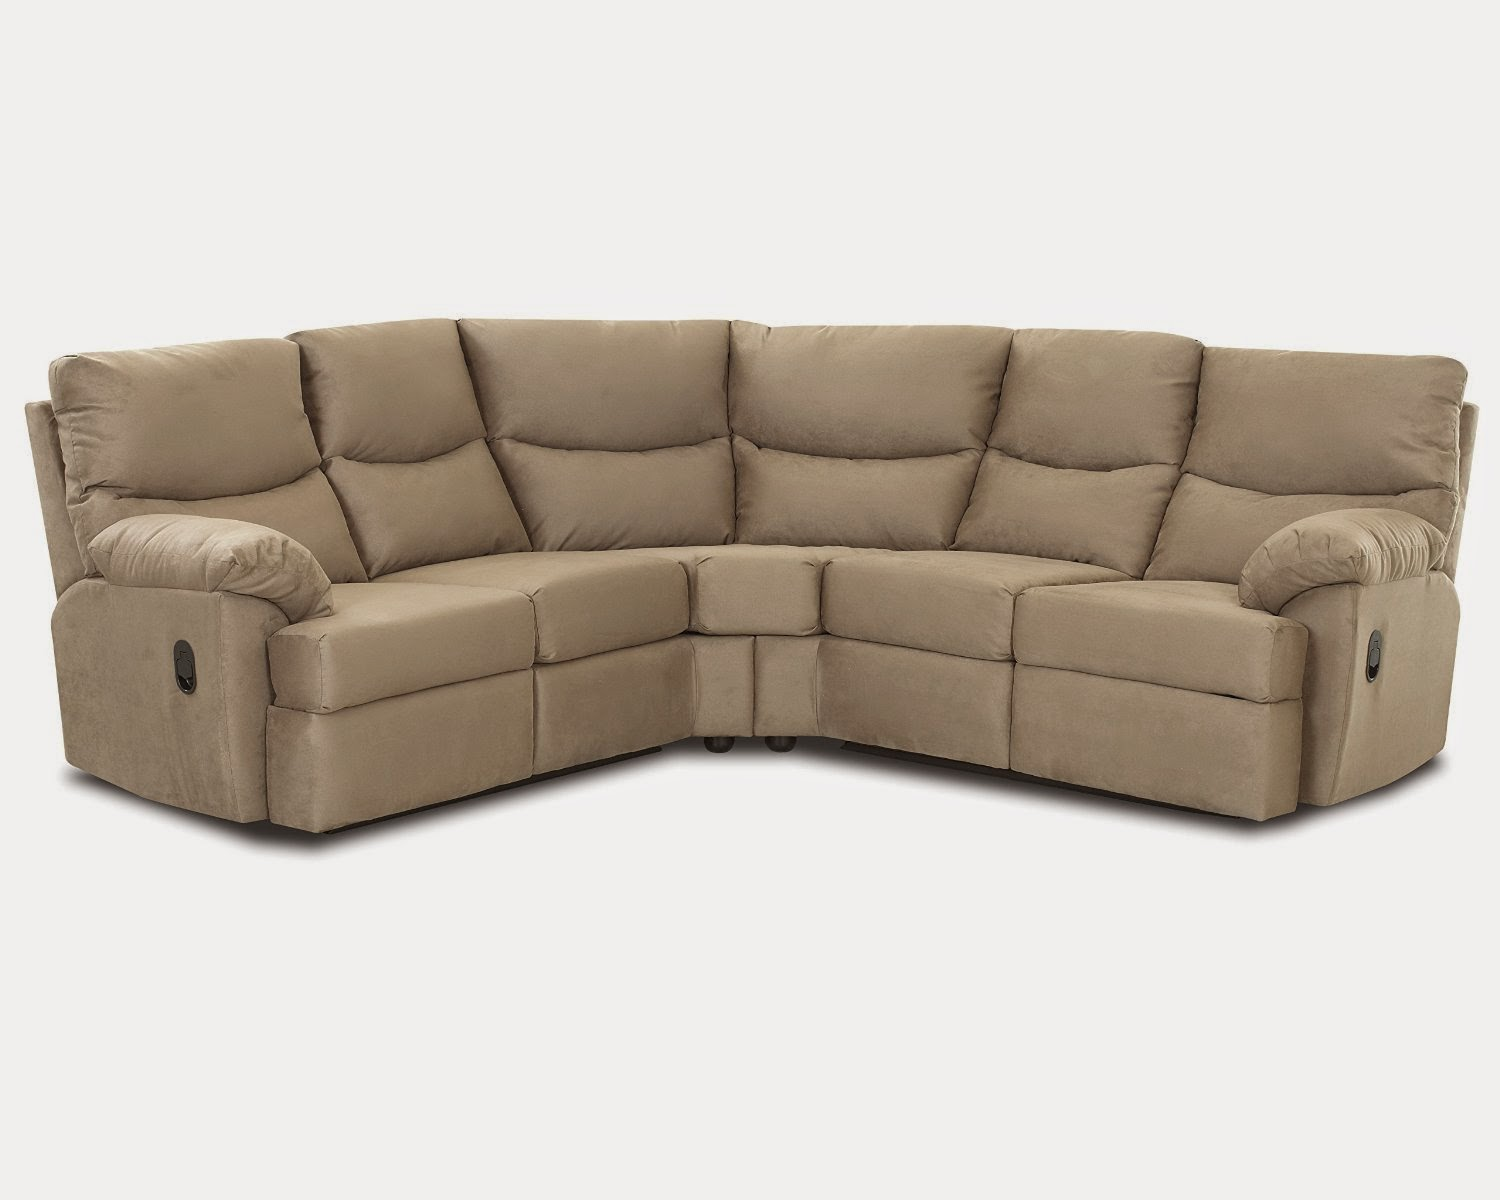 Top seller reclining and recliner sofa loveseat phoenix reclining corner sectional with sleeper Sofa sleeper loveseat